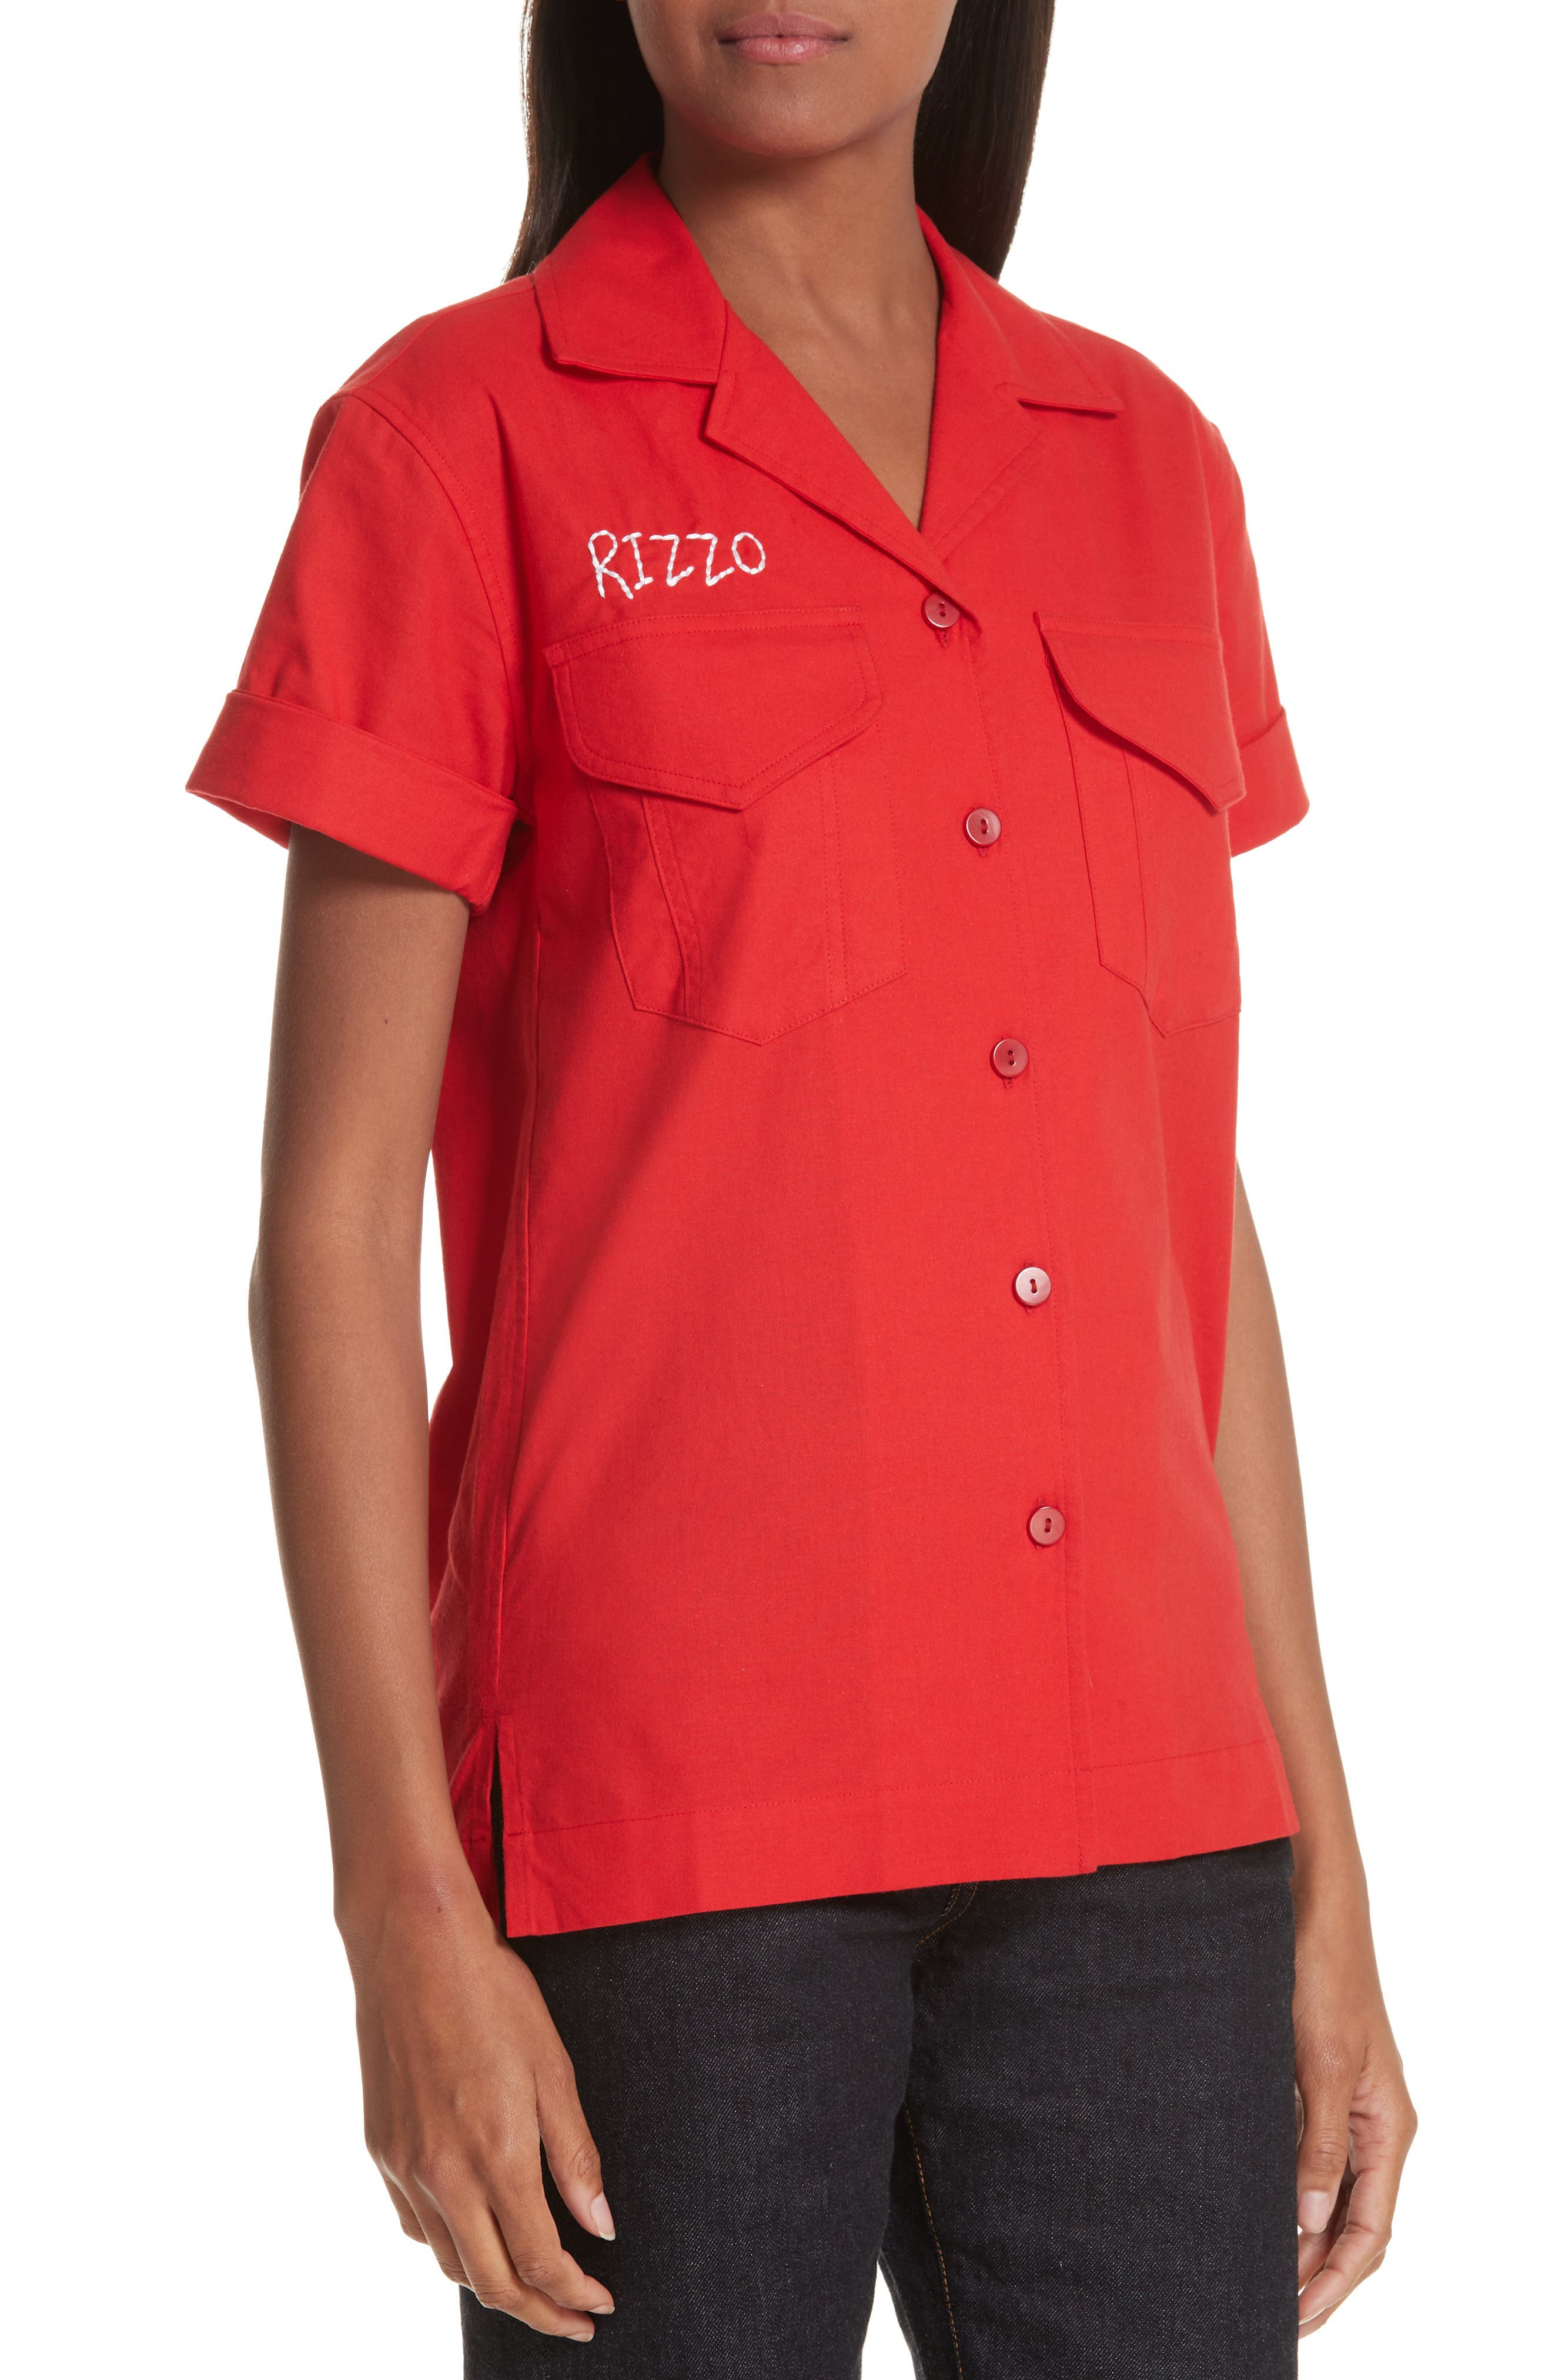 x Paramount Grease Rizzo Embroidered Mechanic Shirt,                             Alternate thumbnail 4, color,                             RIZZO RED